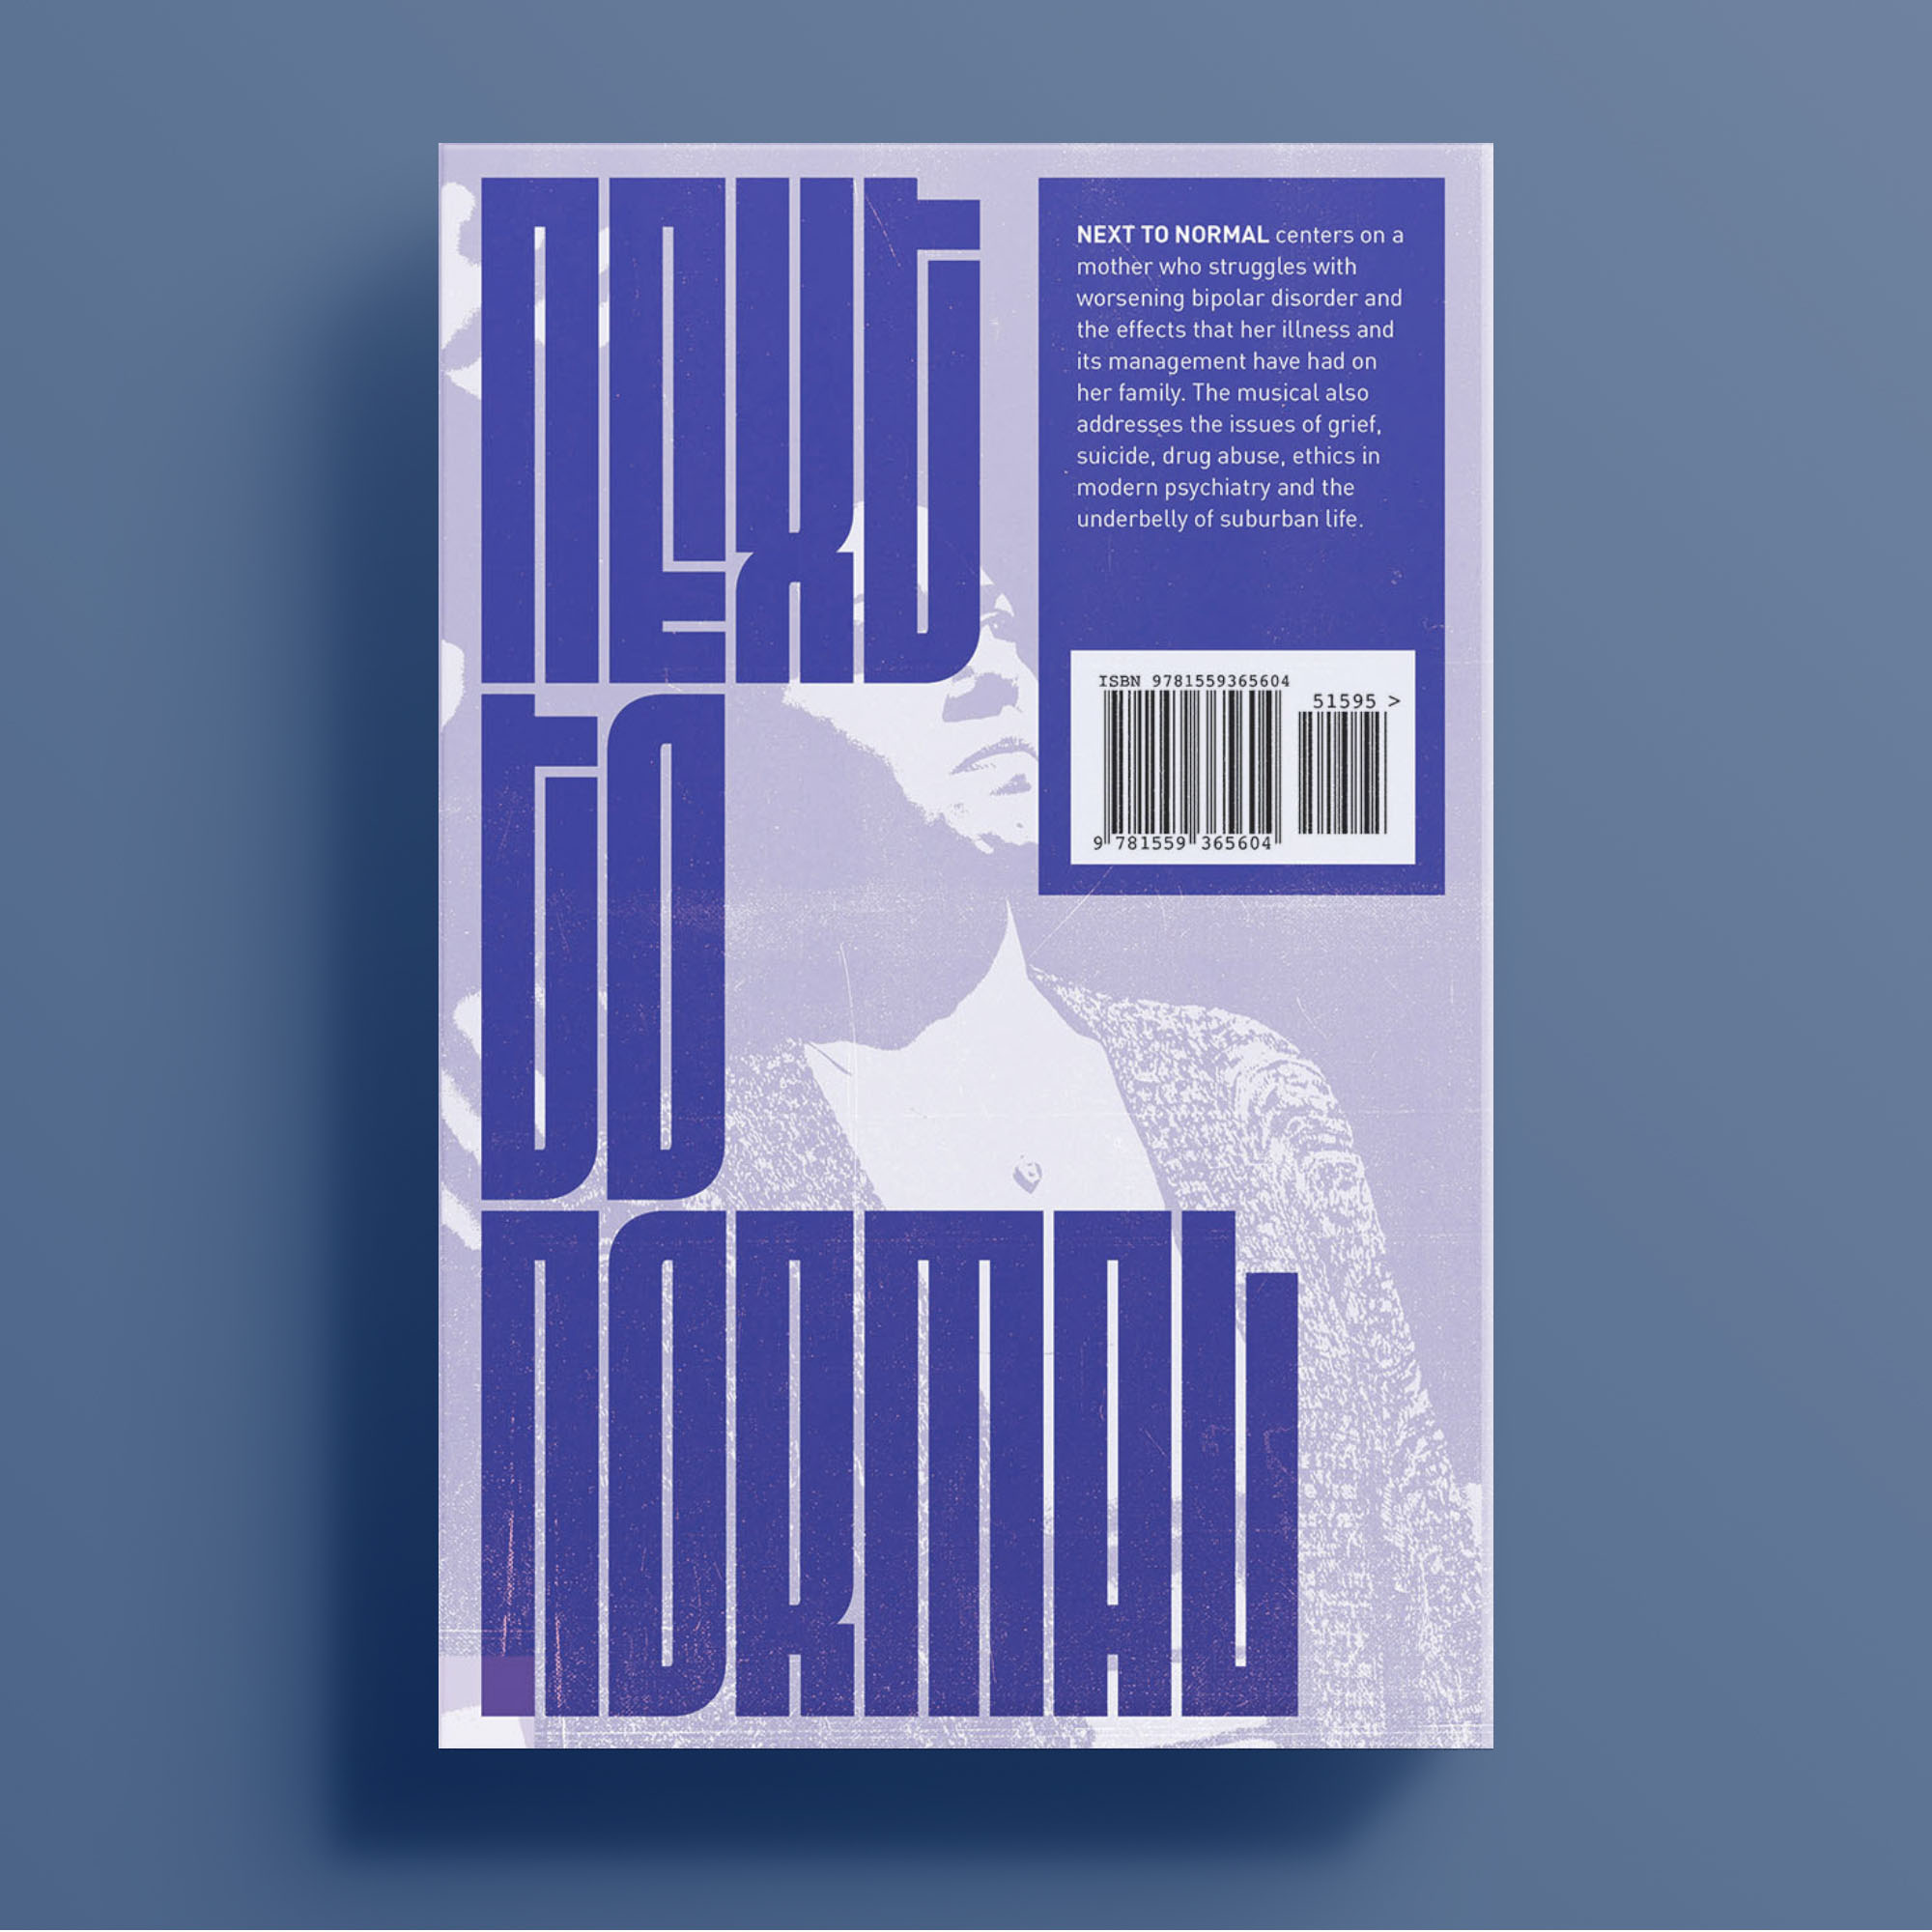 Next to Normal, back cover